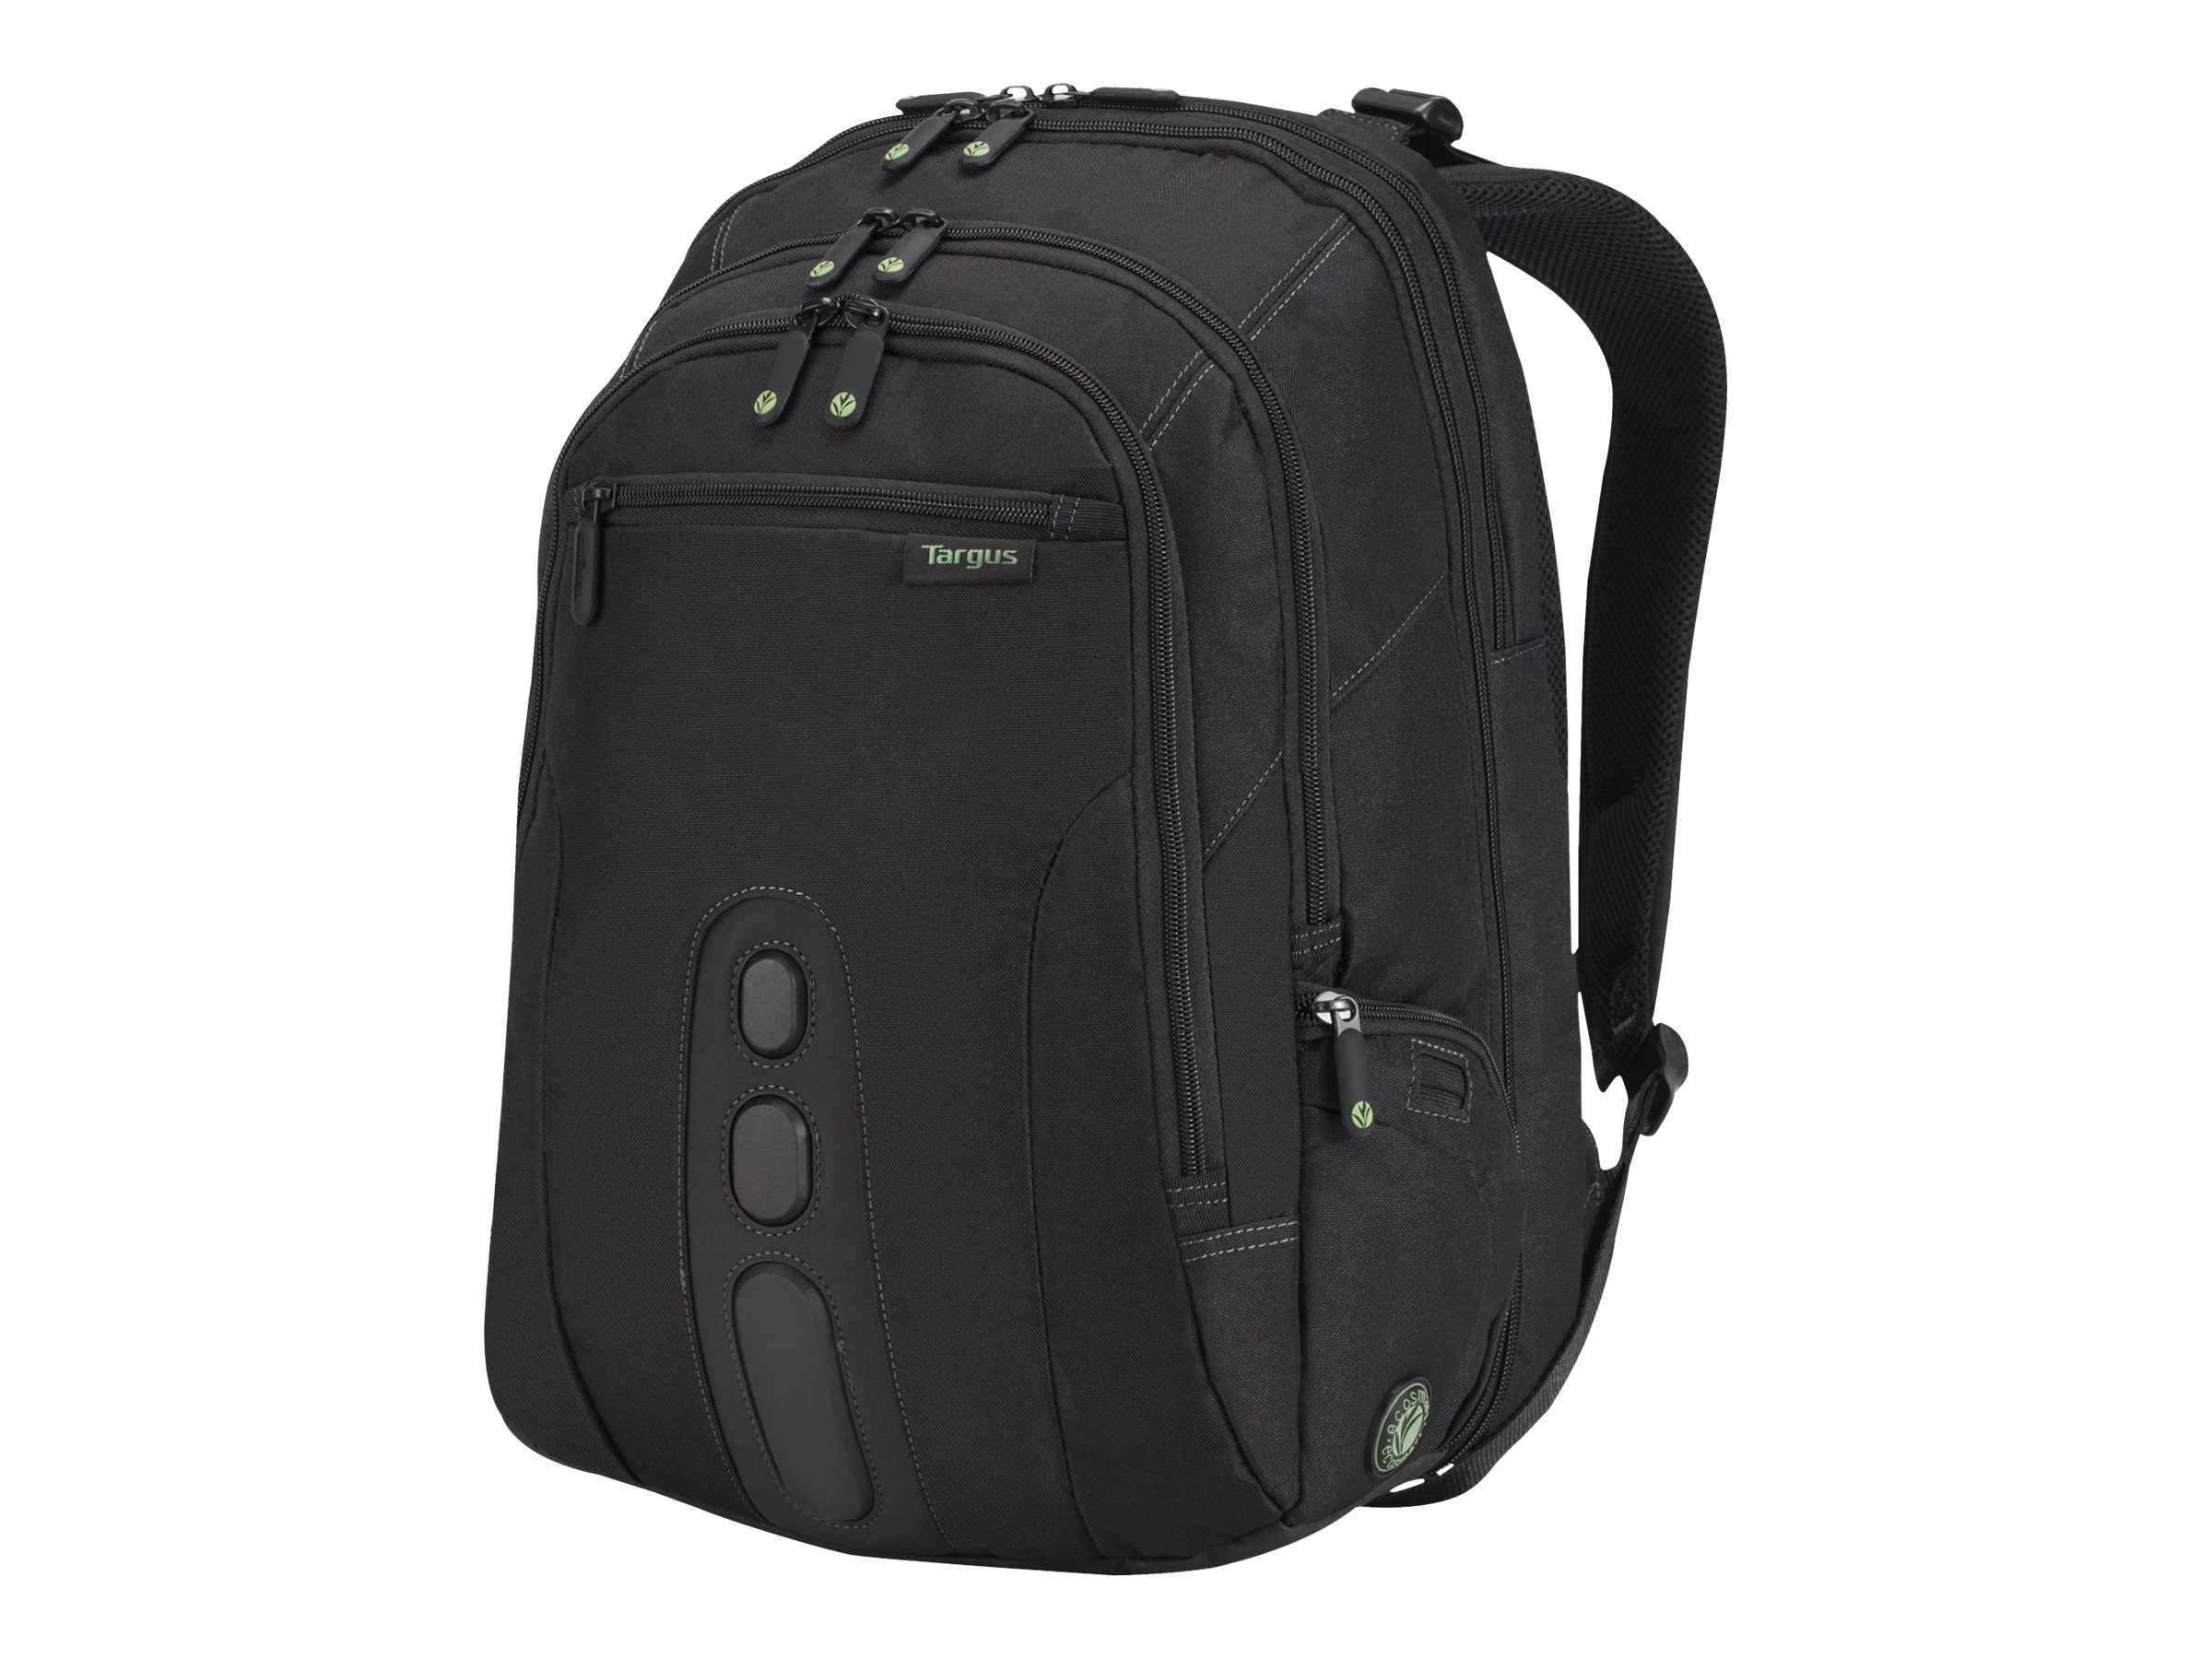 Targus Backpack Spruce Ecosmart 17 notebook, TBB019US, 11126418, Carrying Cases - Notebook